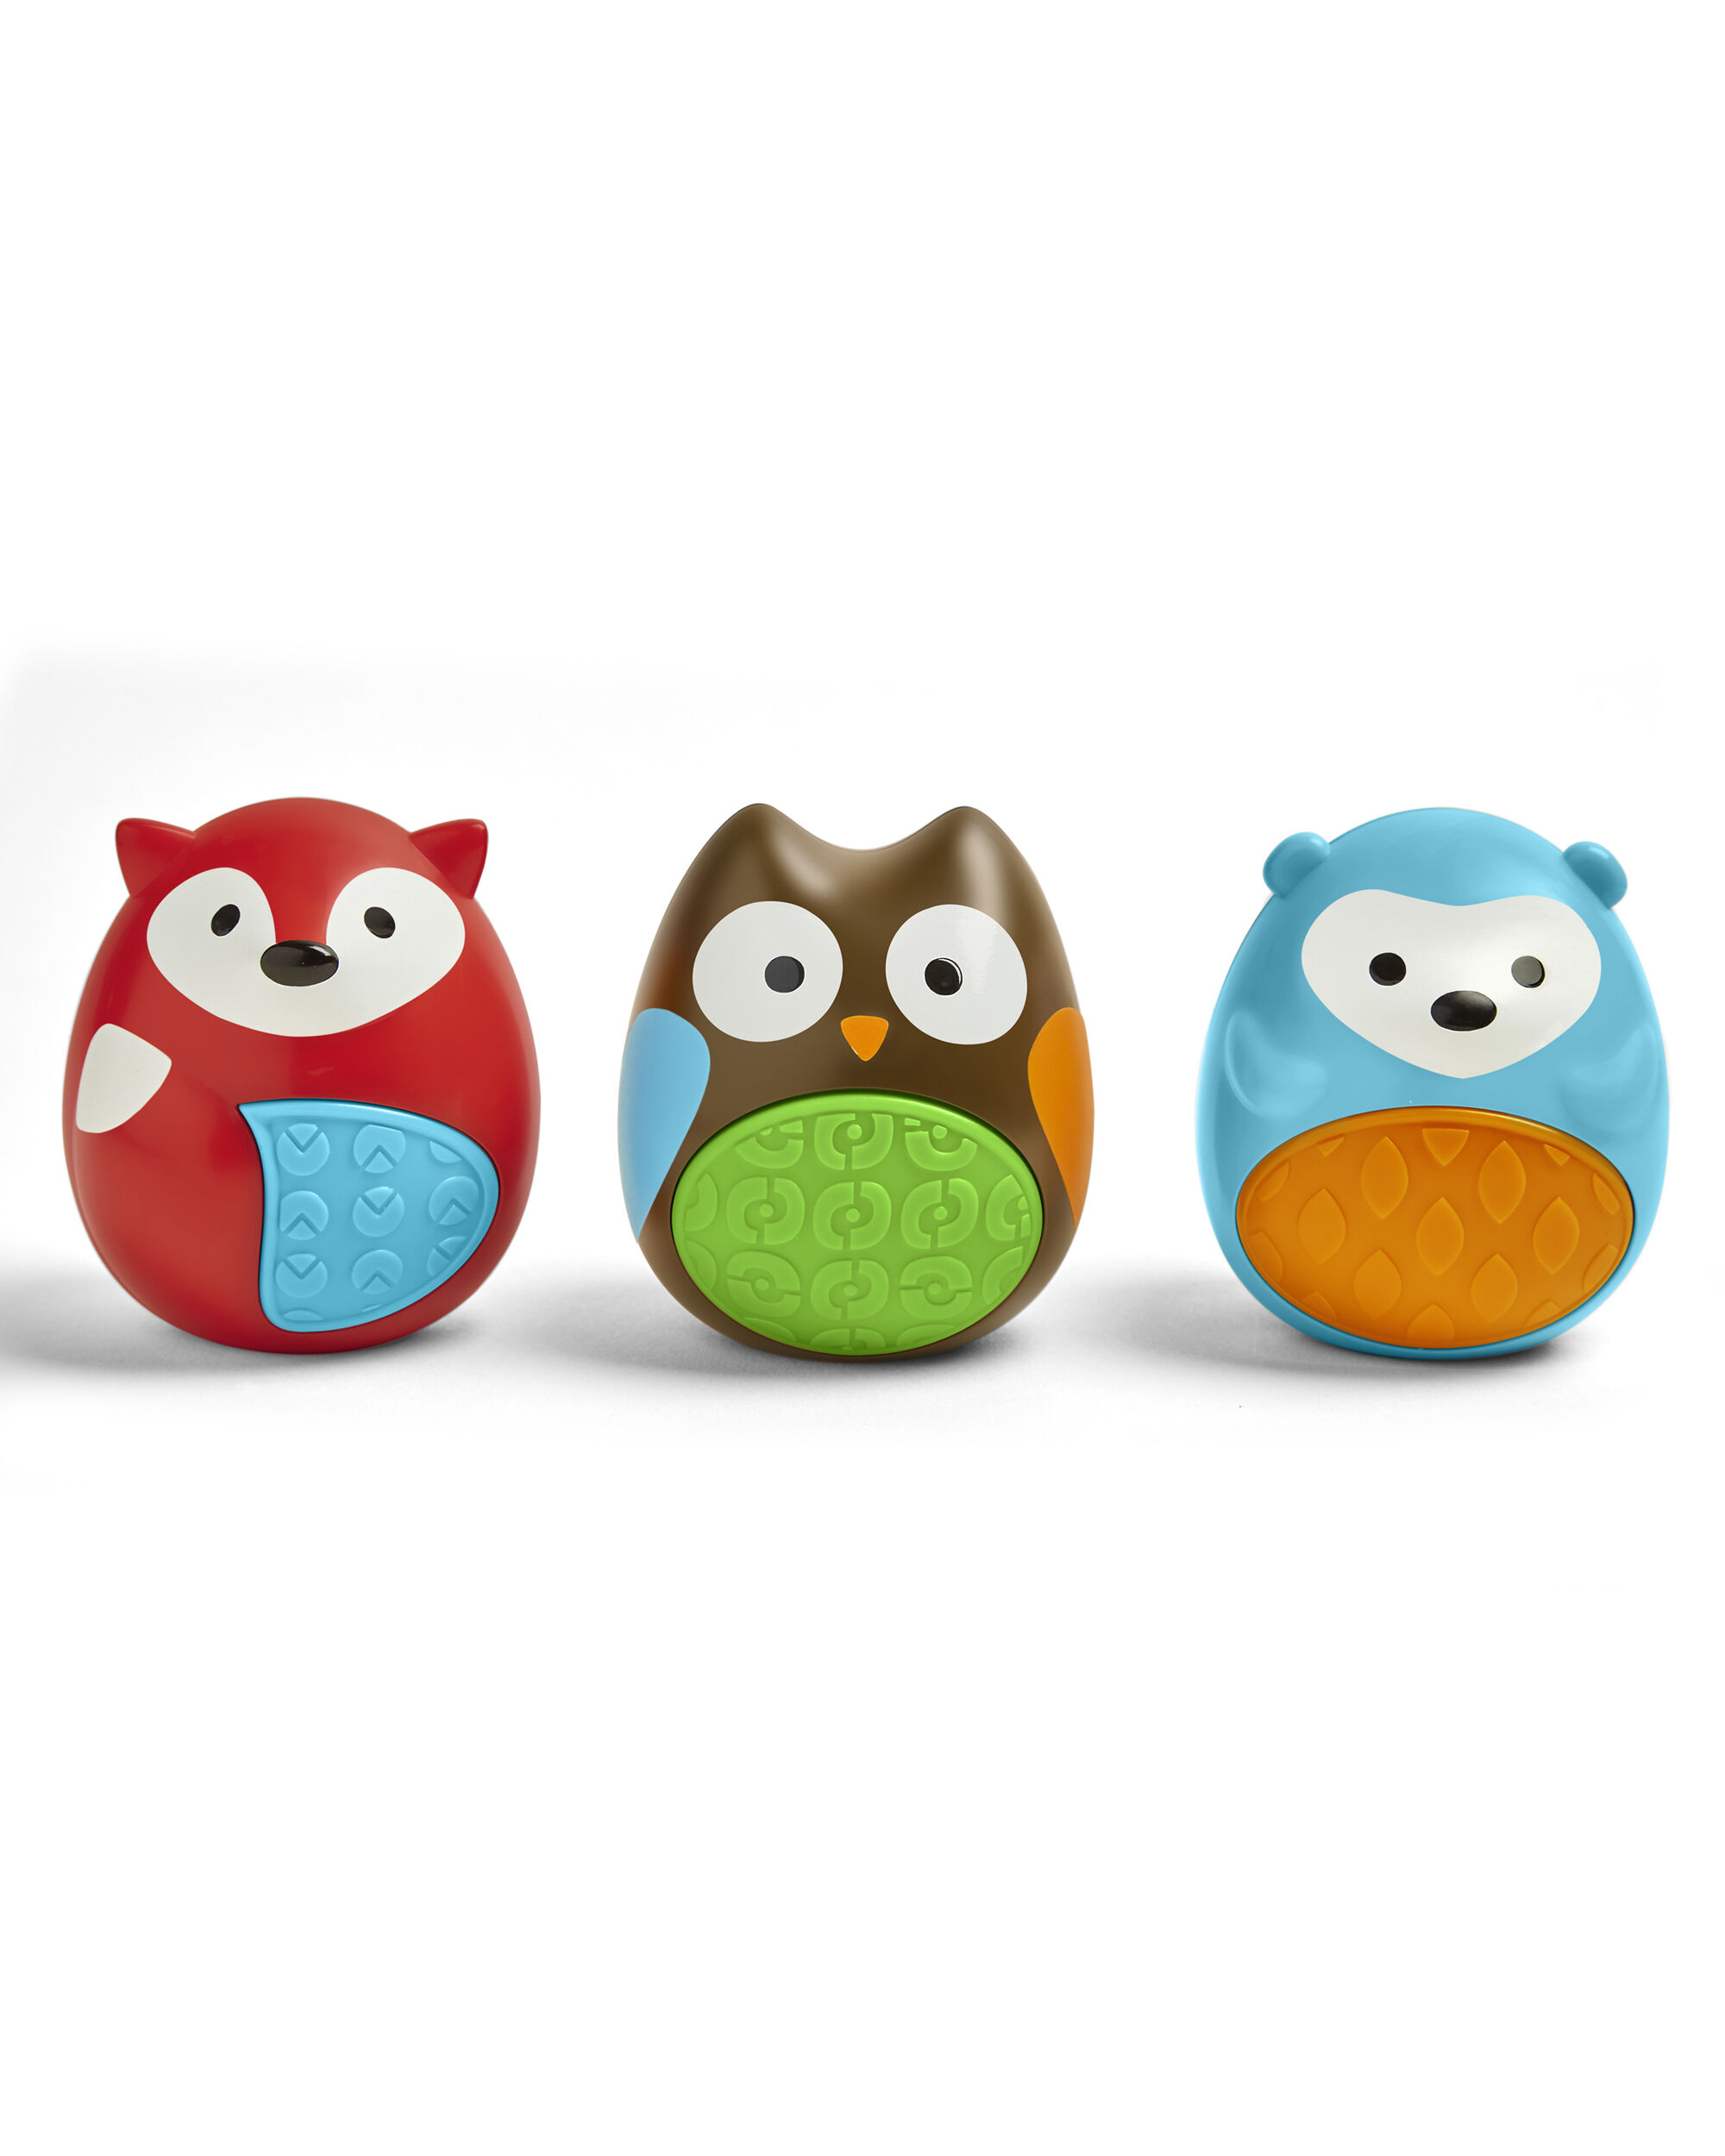 Carters Explore & More Egg Shaker Baby Toy Trio